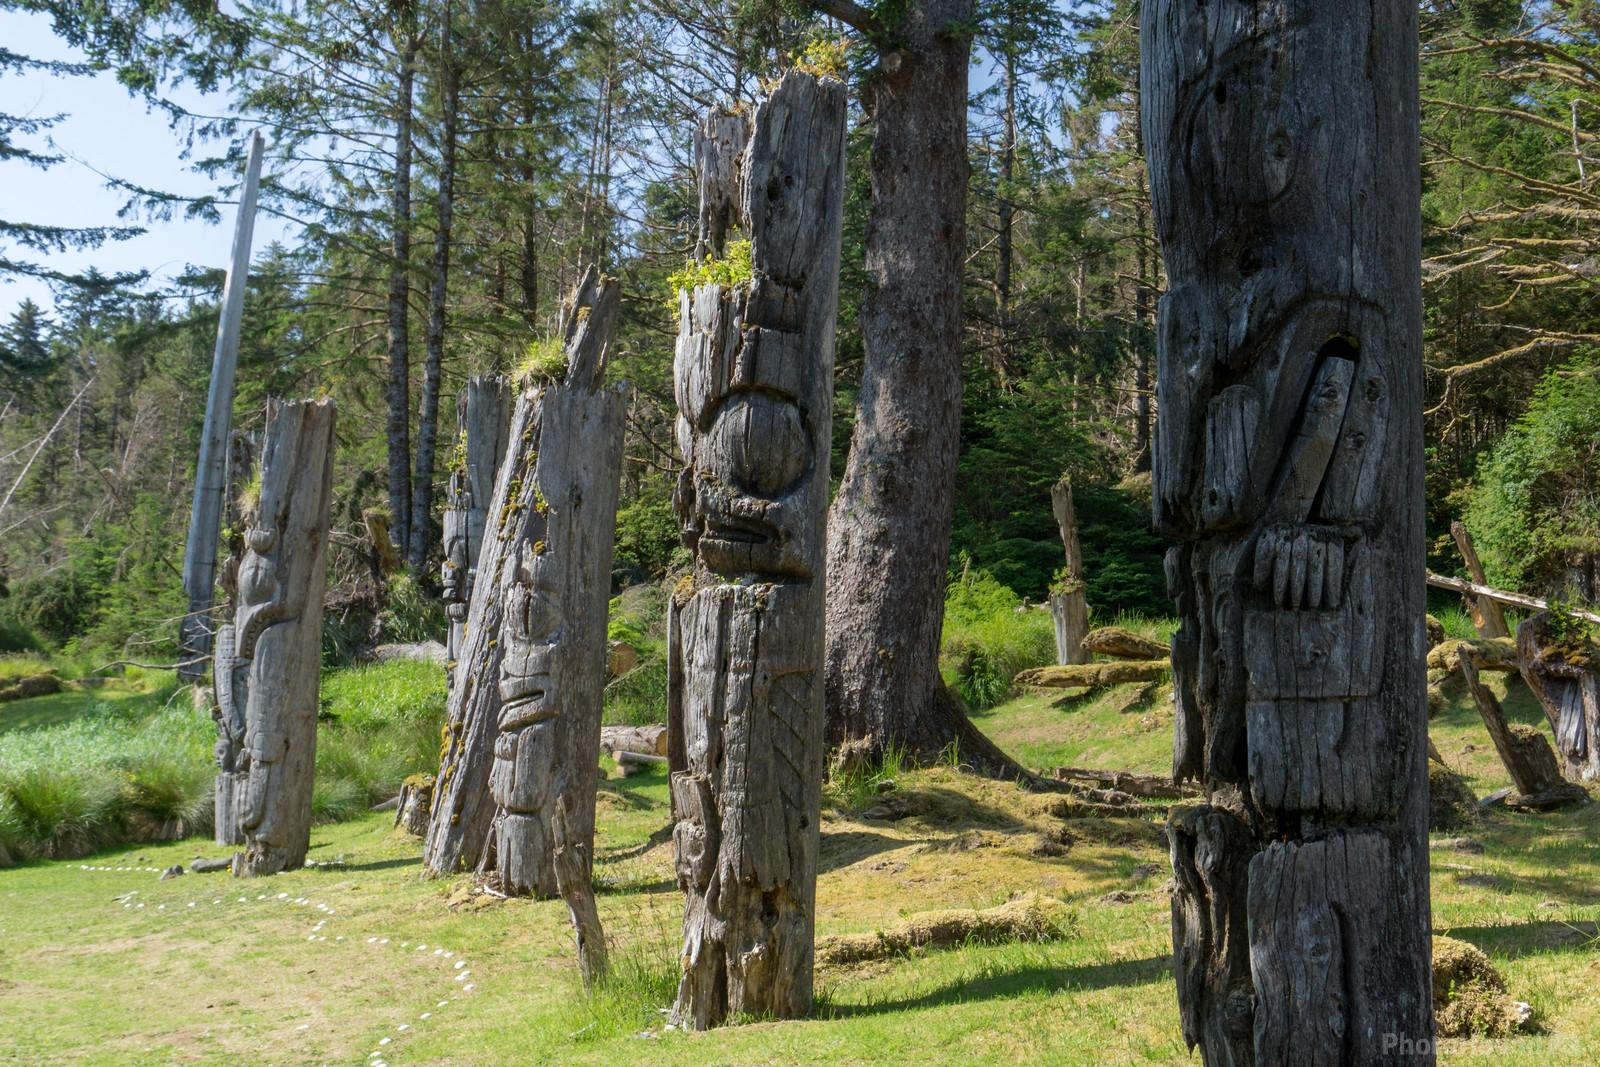 Monumental poles of the Haida Heritage Site of S'gang Gwaay Llnagaay